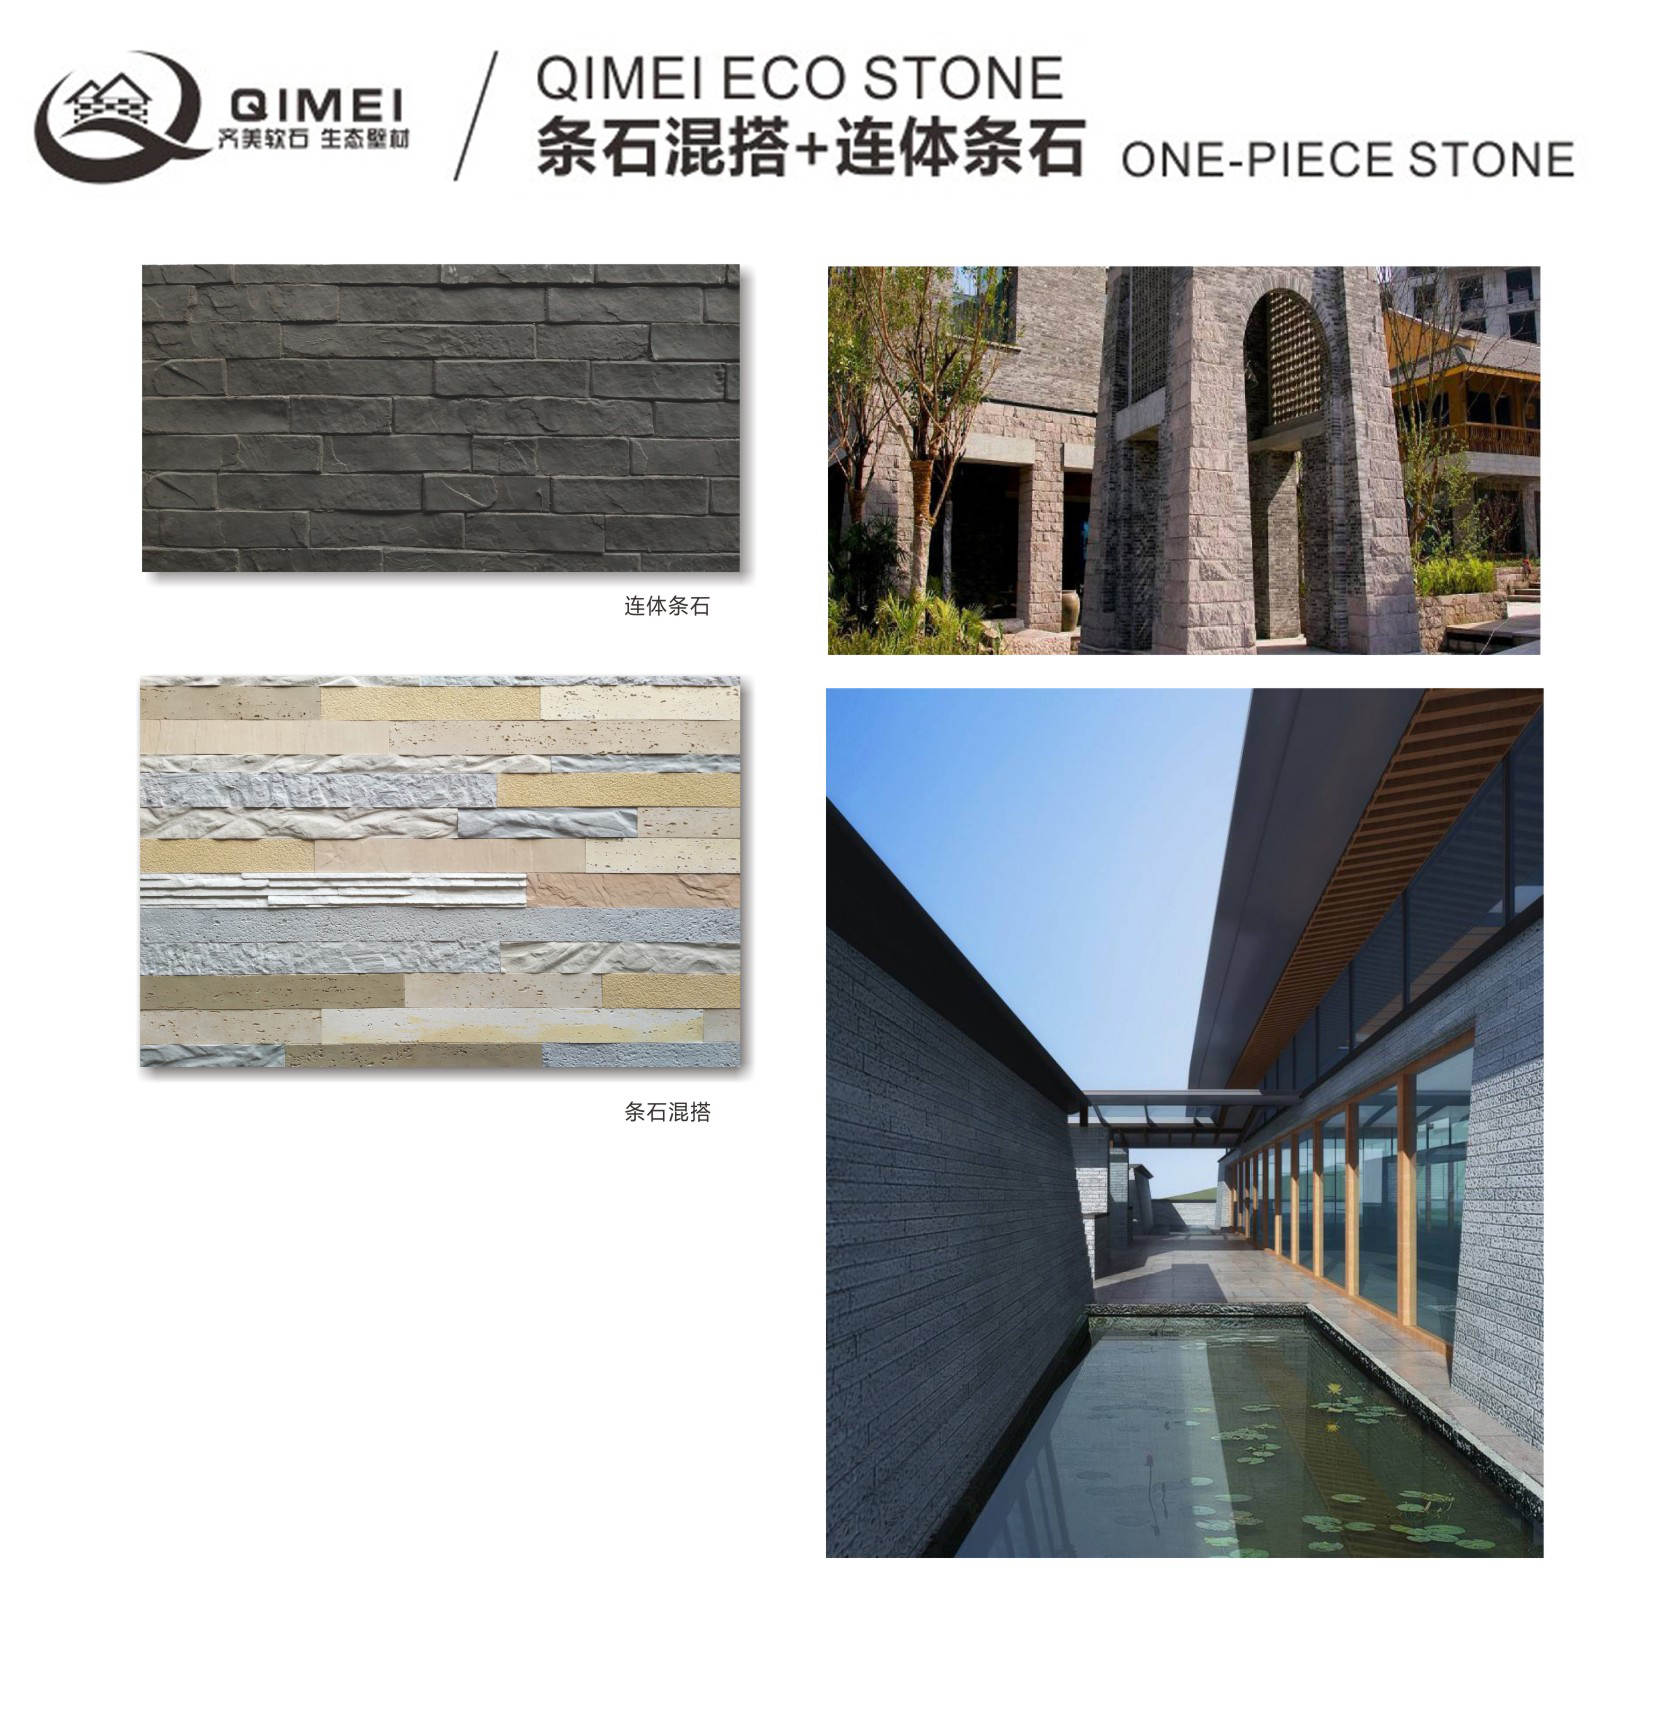 China baidai qimei stone series flexible and soft stone